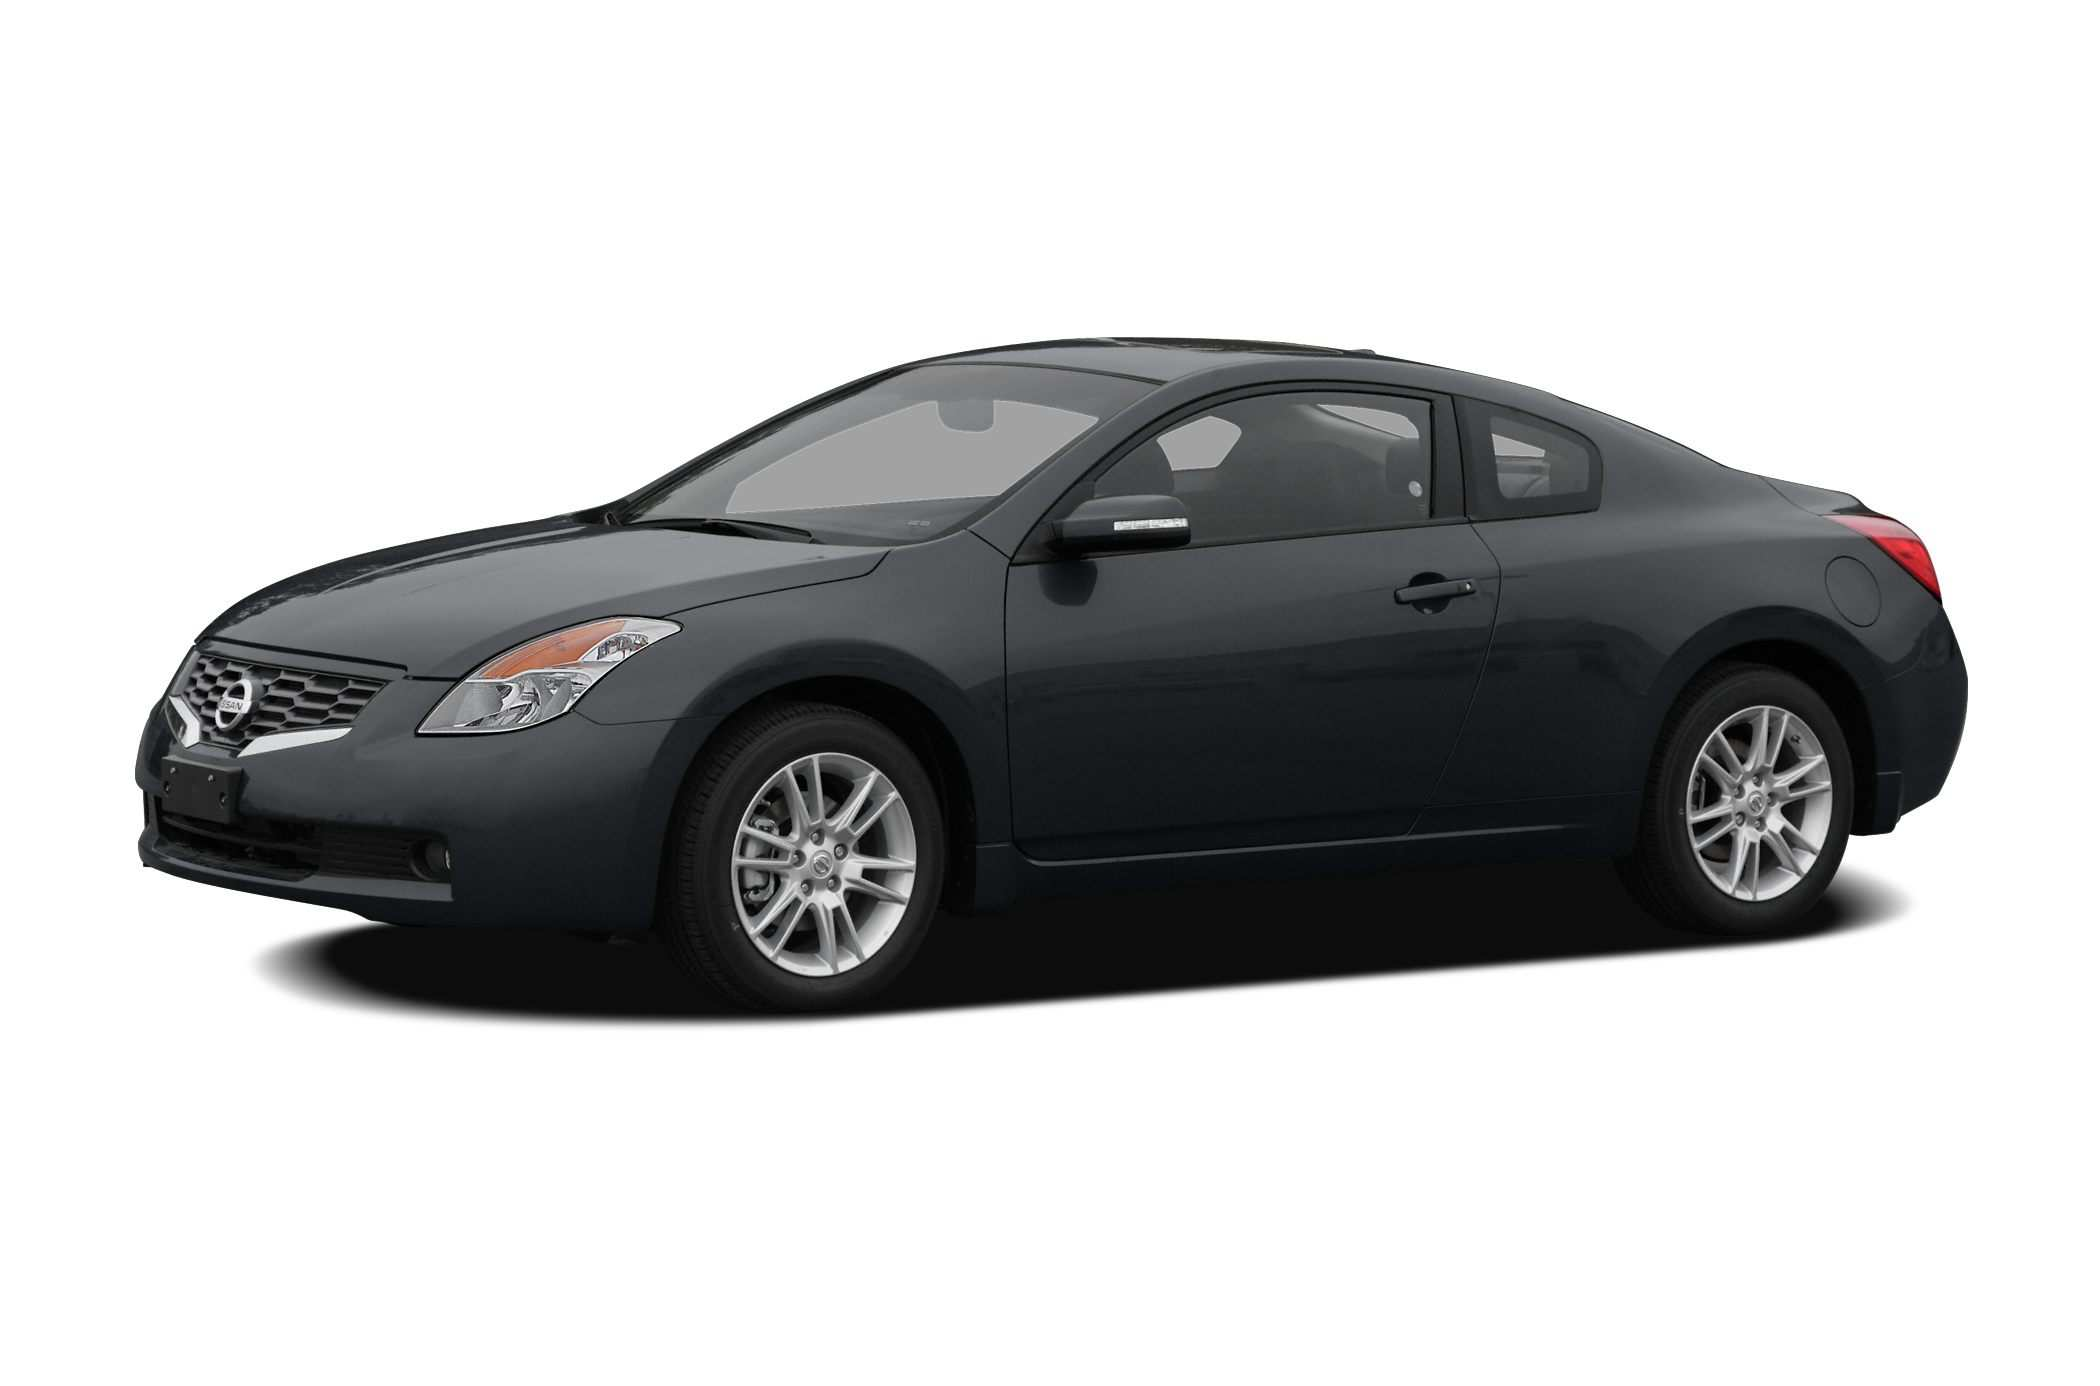 51 New Nissan Altima Coupe 2008 Release Date